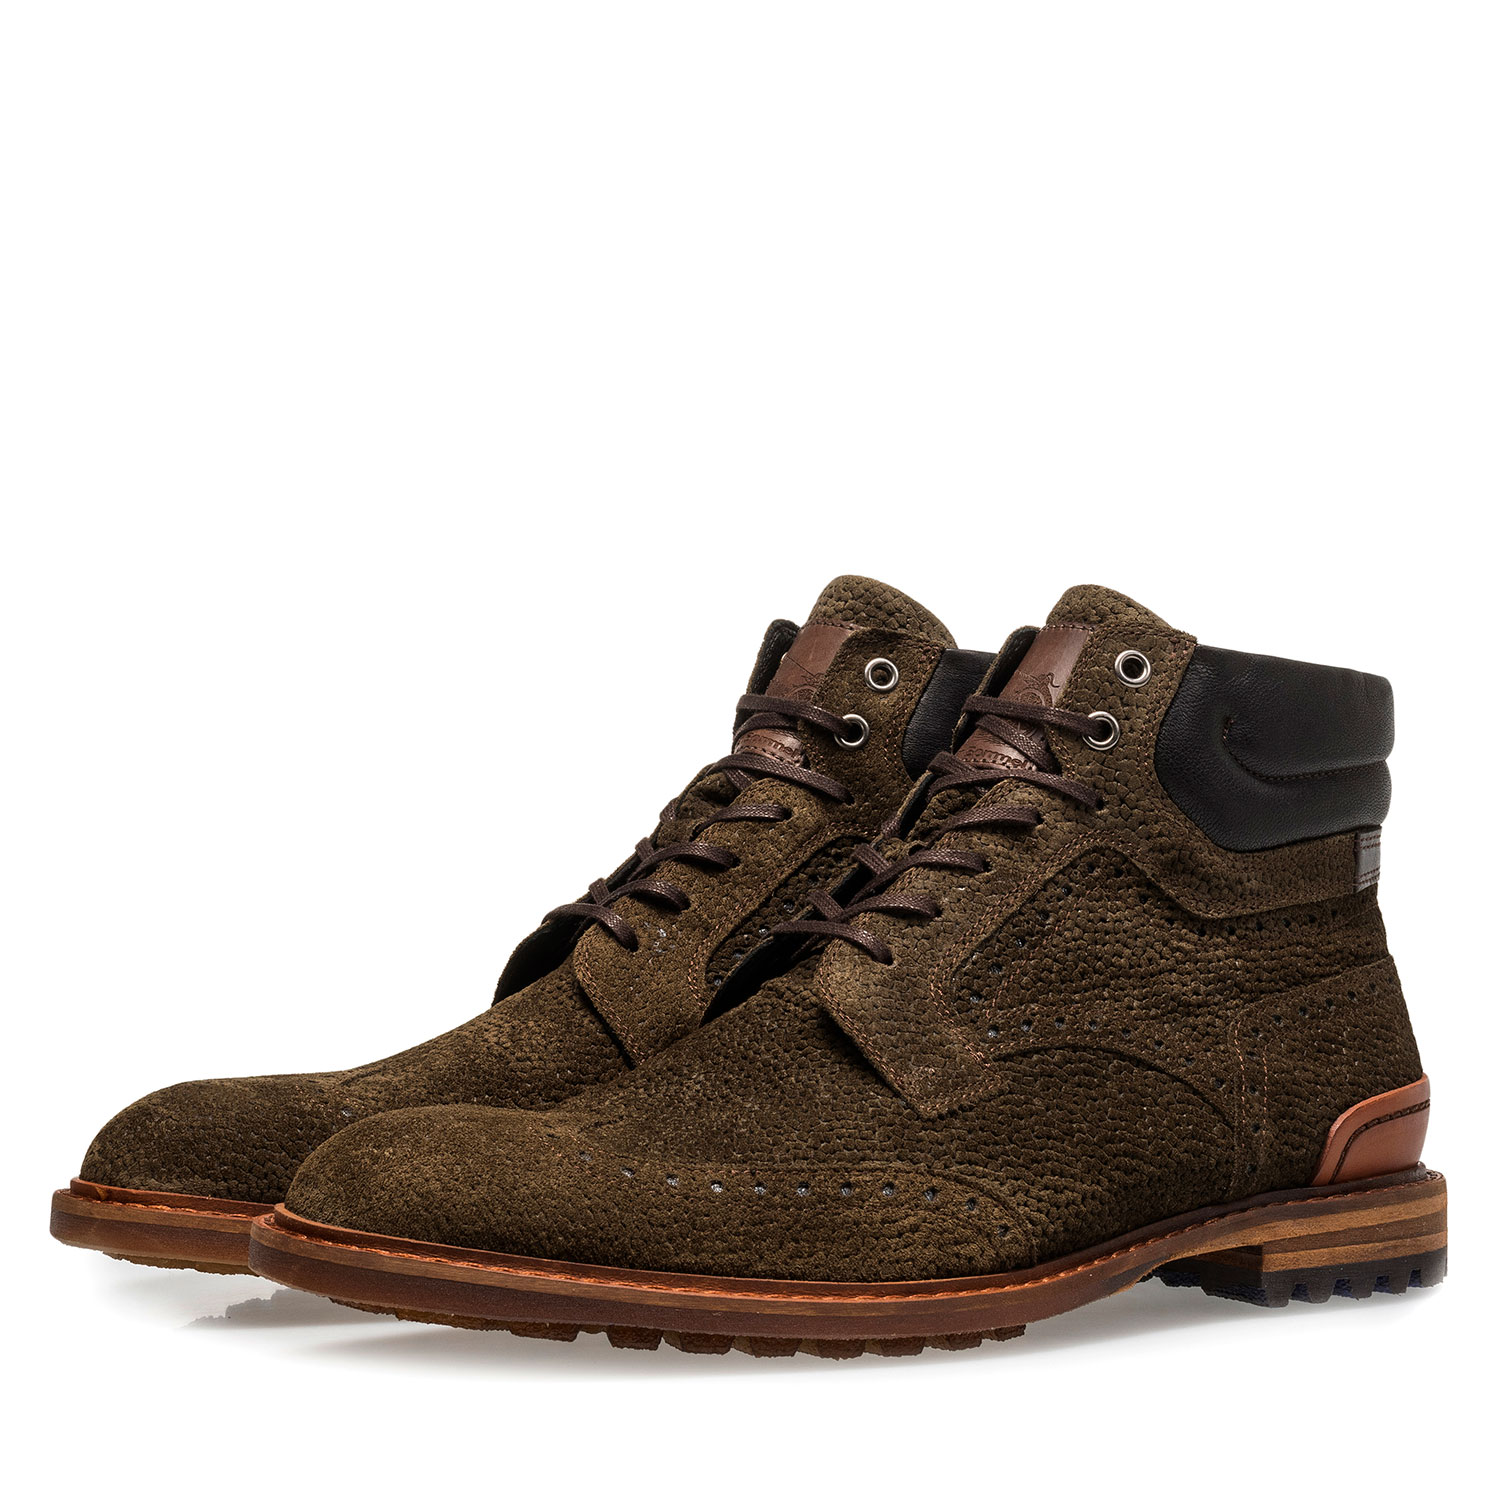 10816/03 - Olive green suede lace boot with print